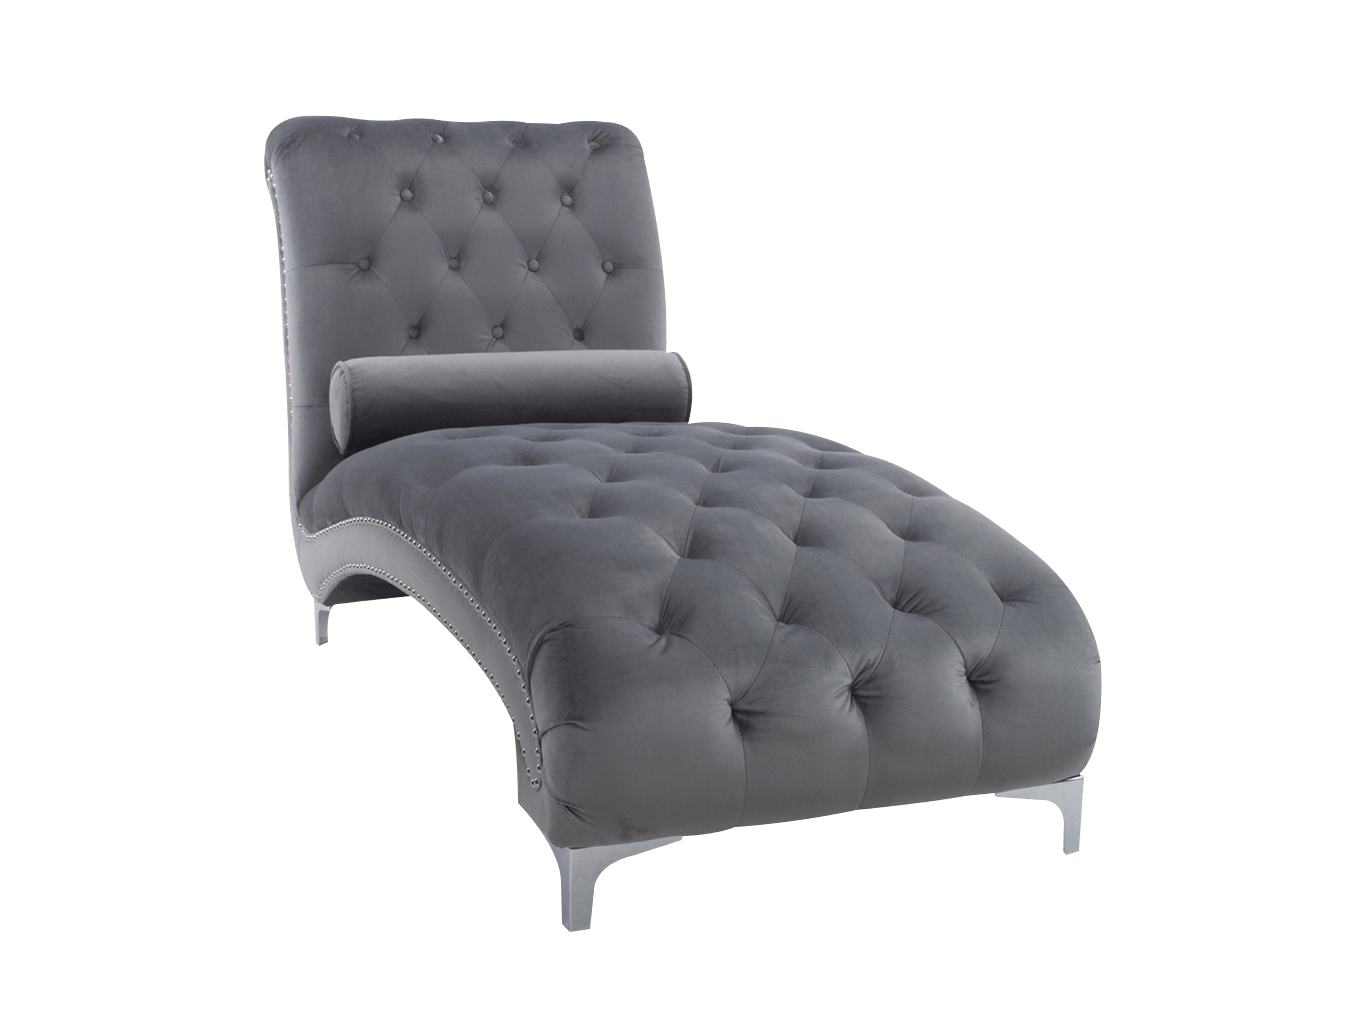 Chaise Lounge in Grey velvet Upholstery